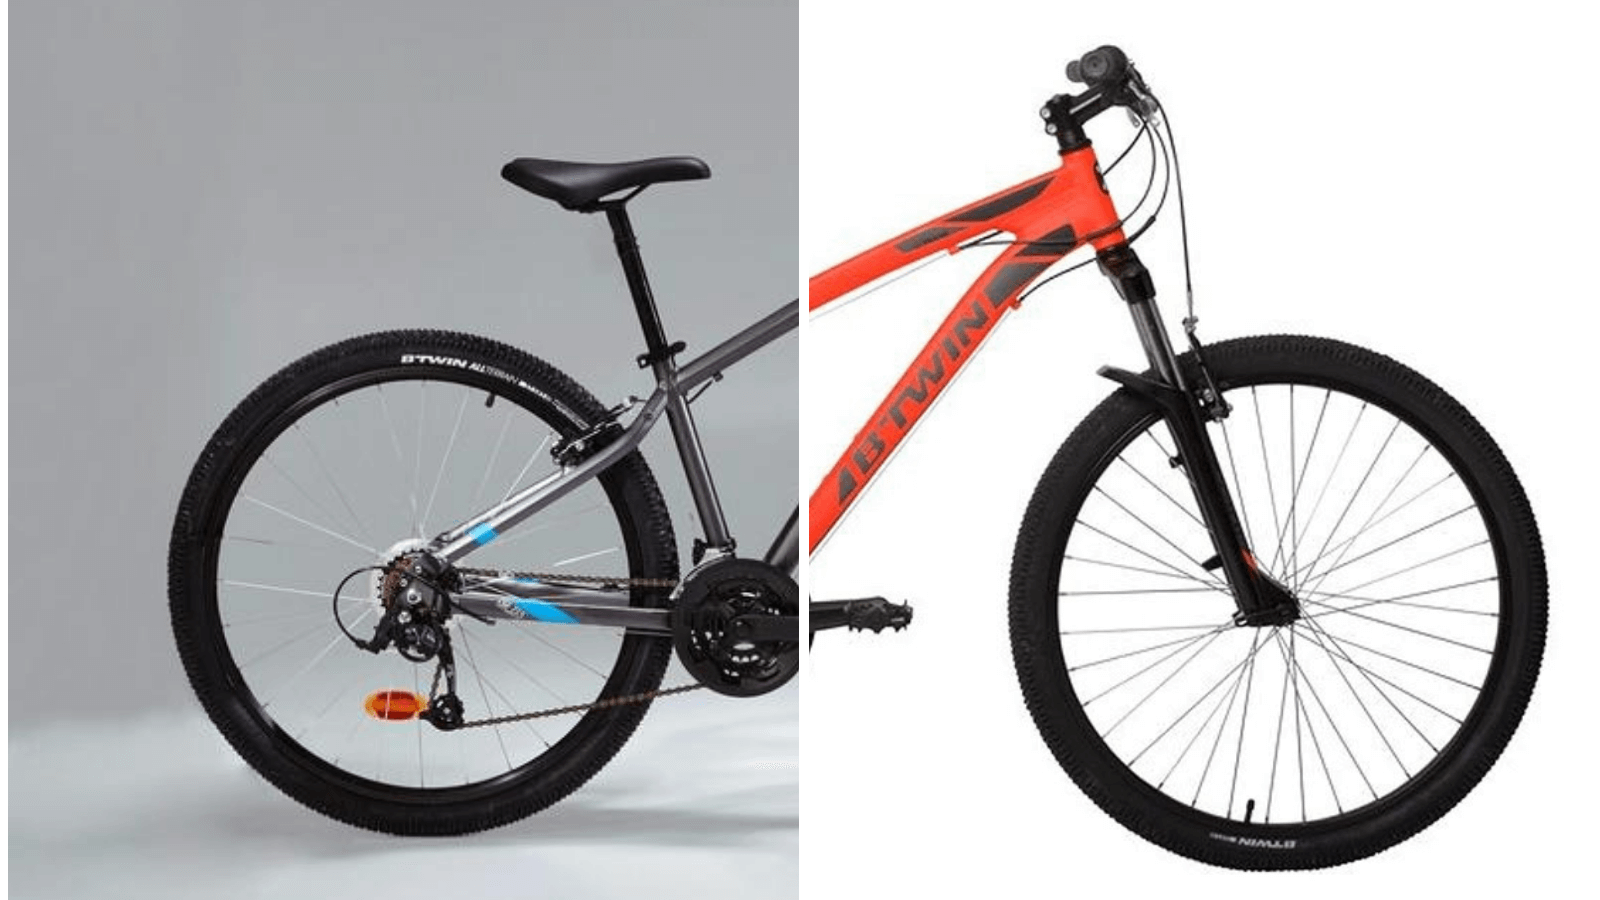 84f6d1cc3 Btwin Rockrider 340 vs Rockrider ST100- Which cycle is better